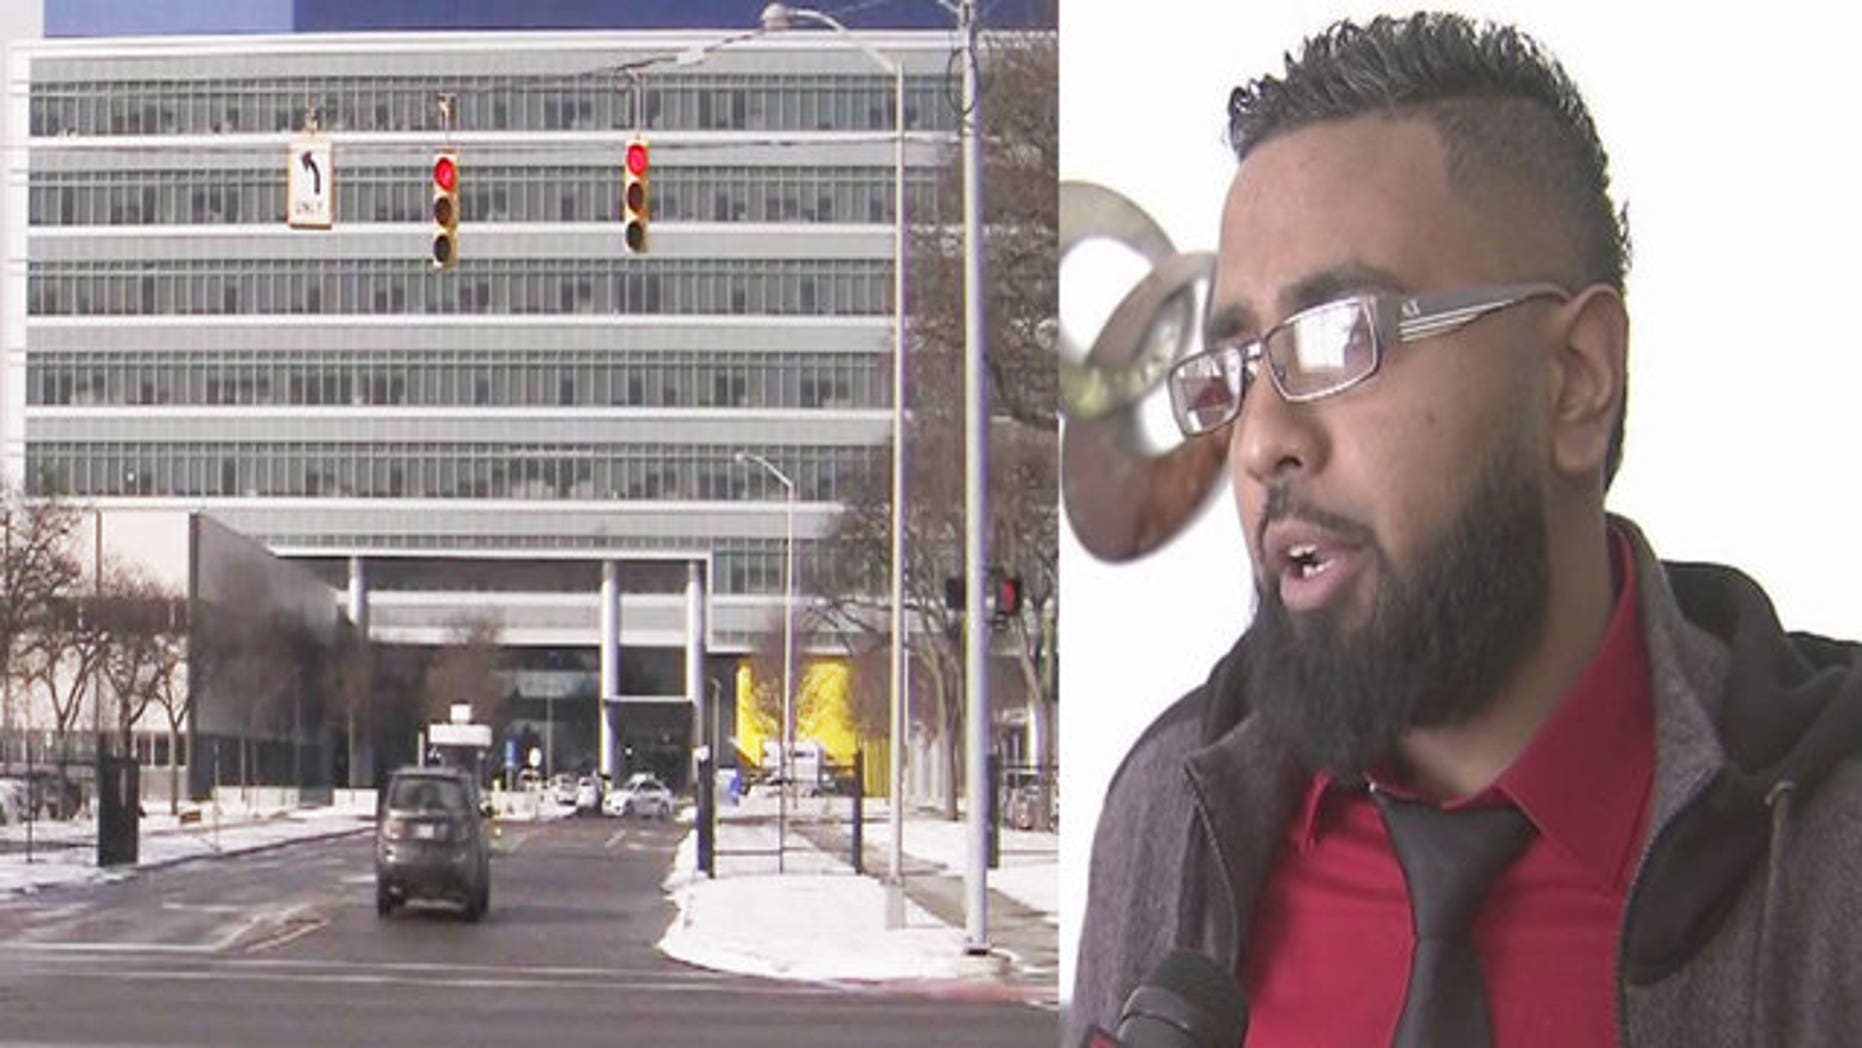 The General Motors Technical Center, left, where Didarul Sarder, right, stopped a stabbing attack.